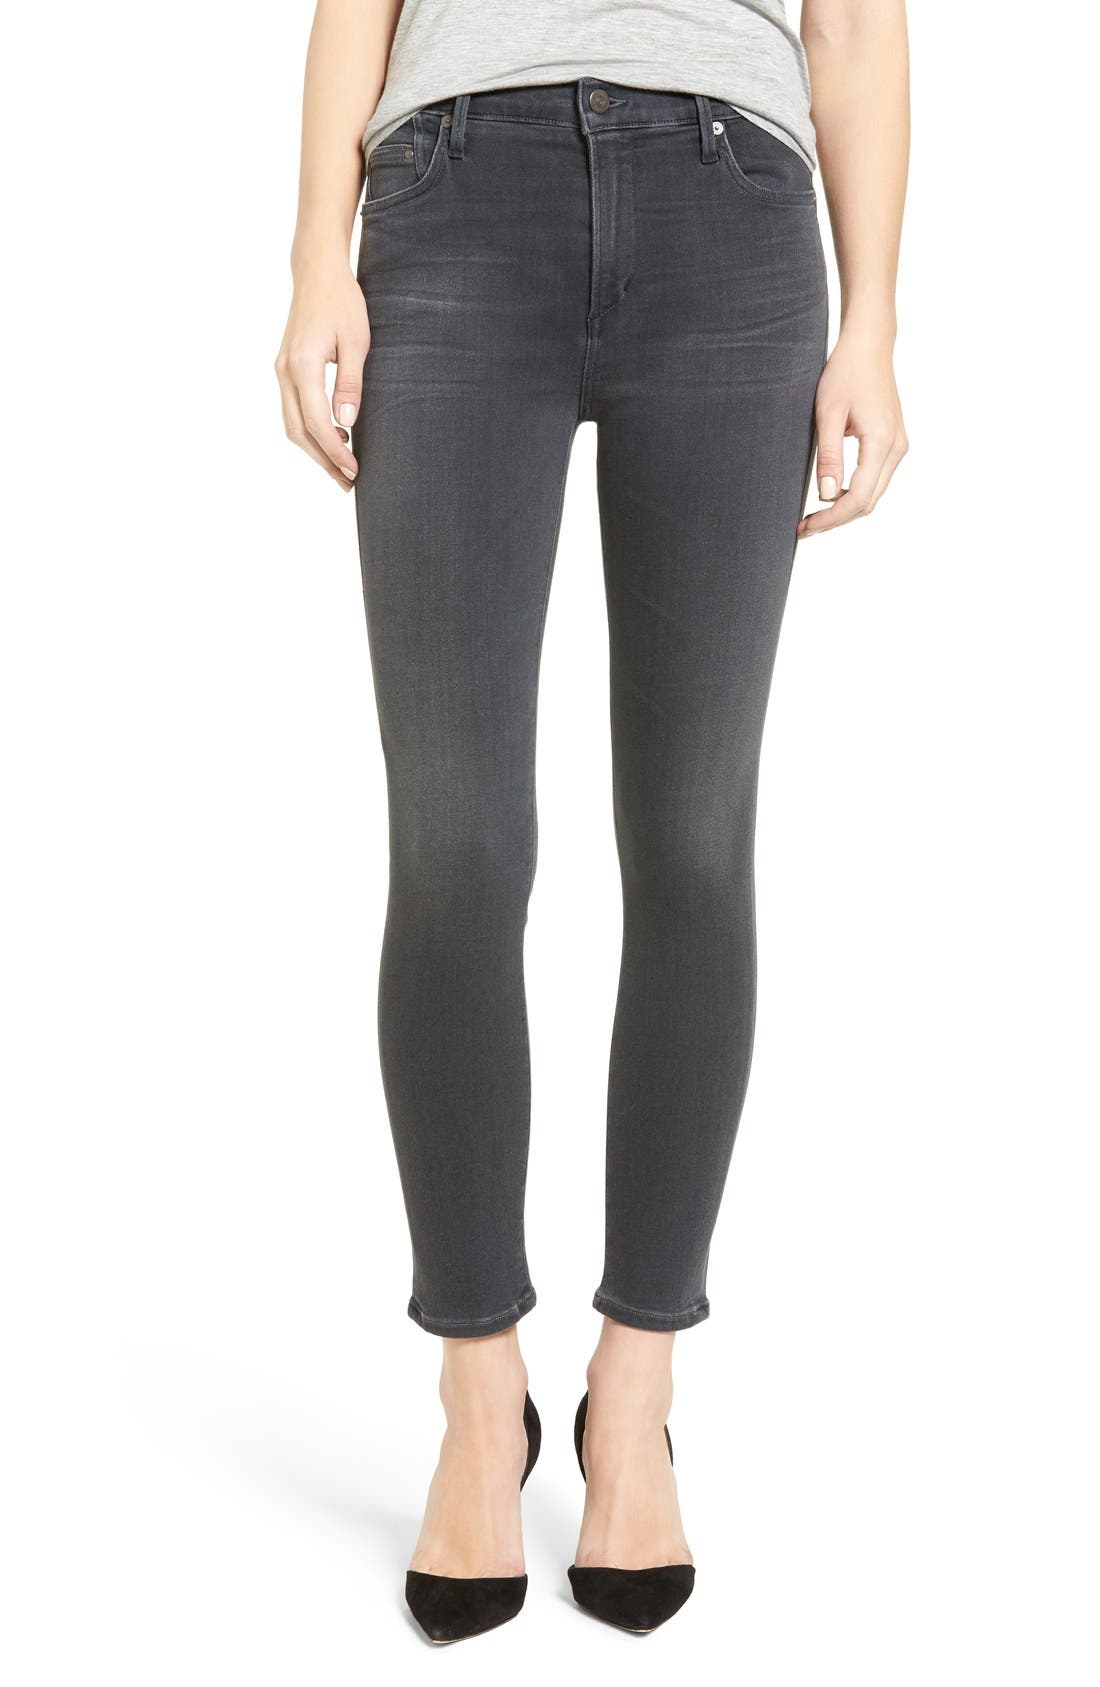 Rocket High Waist Crop Skinny Jeans,                             Main thumbnail 1, color,                             002